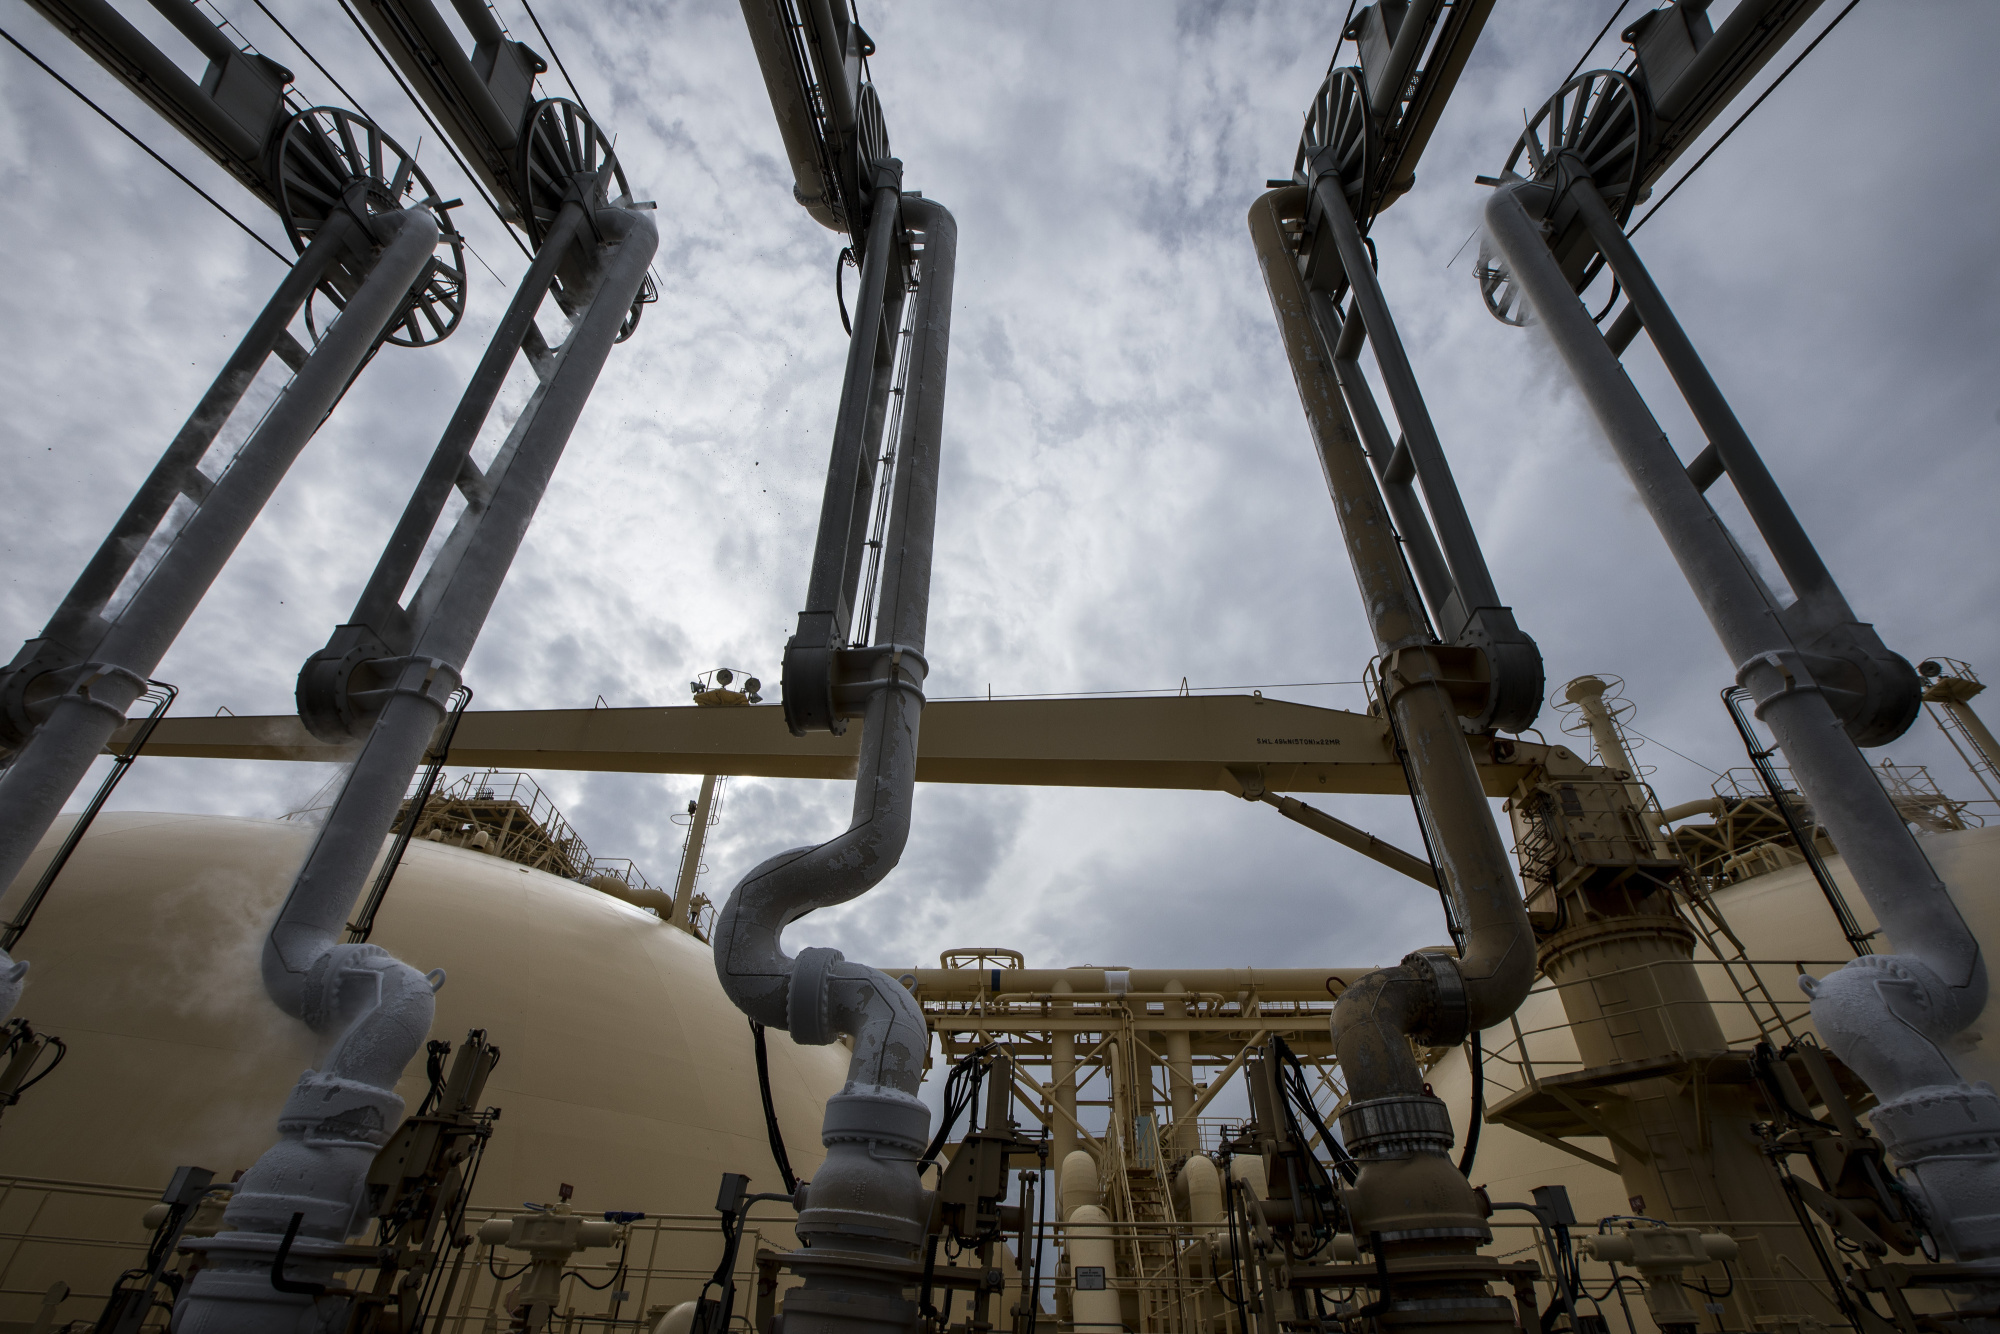 Liquefied natural gas (LNG) dispenses through pipes on-board the Gallina LNG tanker after docking at the National Grid Plc's Grain LNG plant on the Isle of Grain in Rochester, U.K. Photographer: Jason Alden/Bloomberg